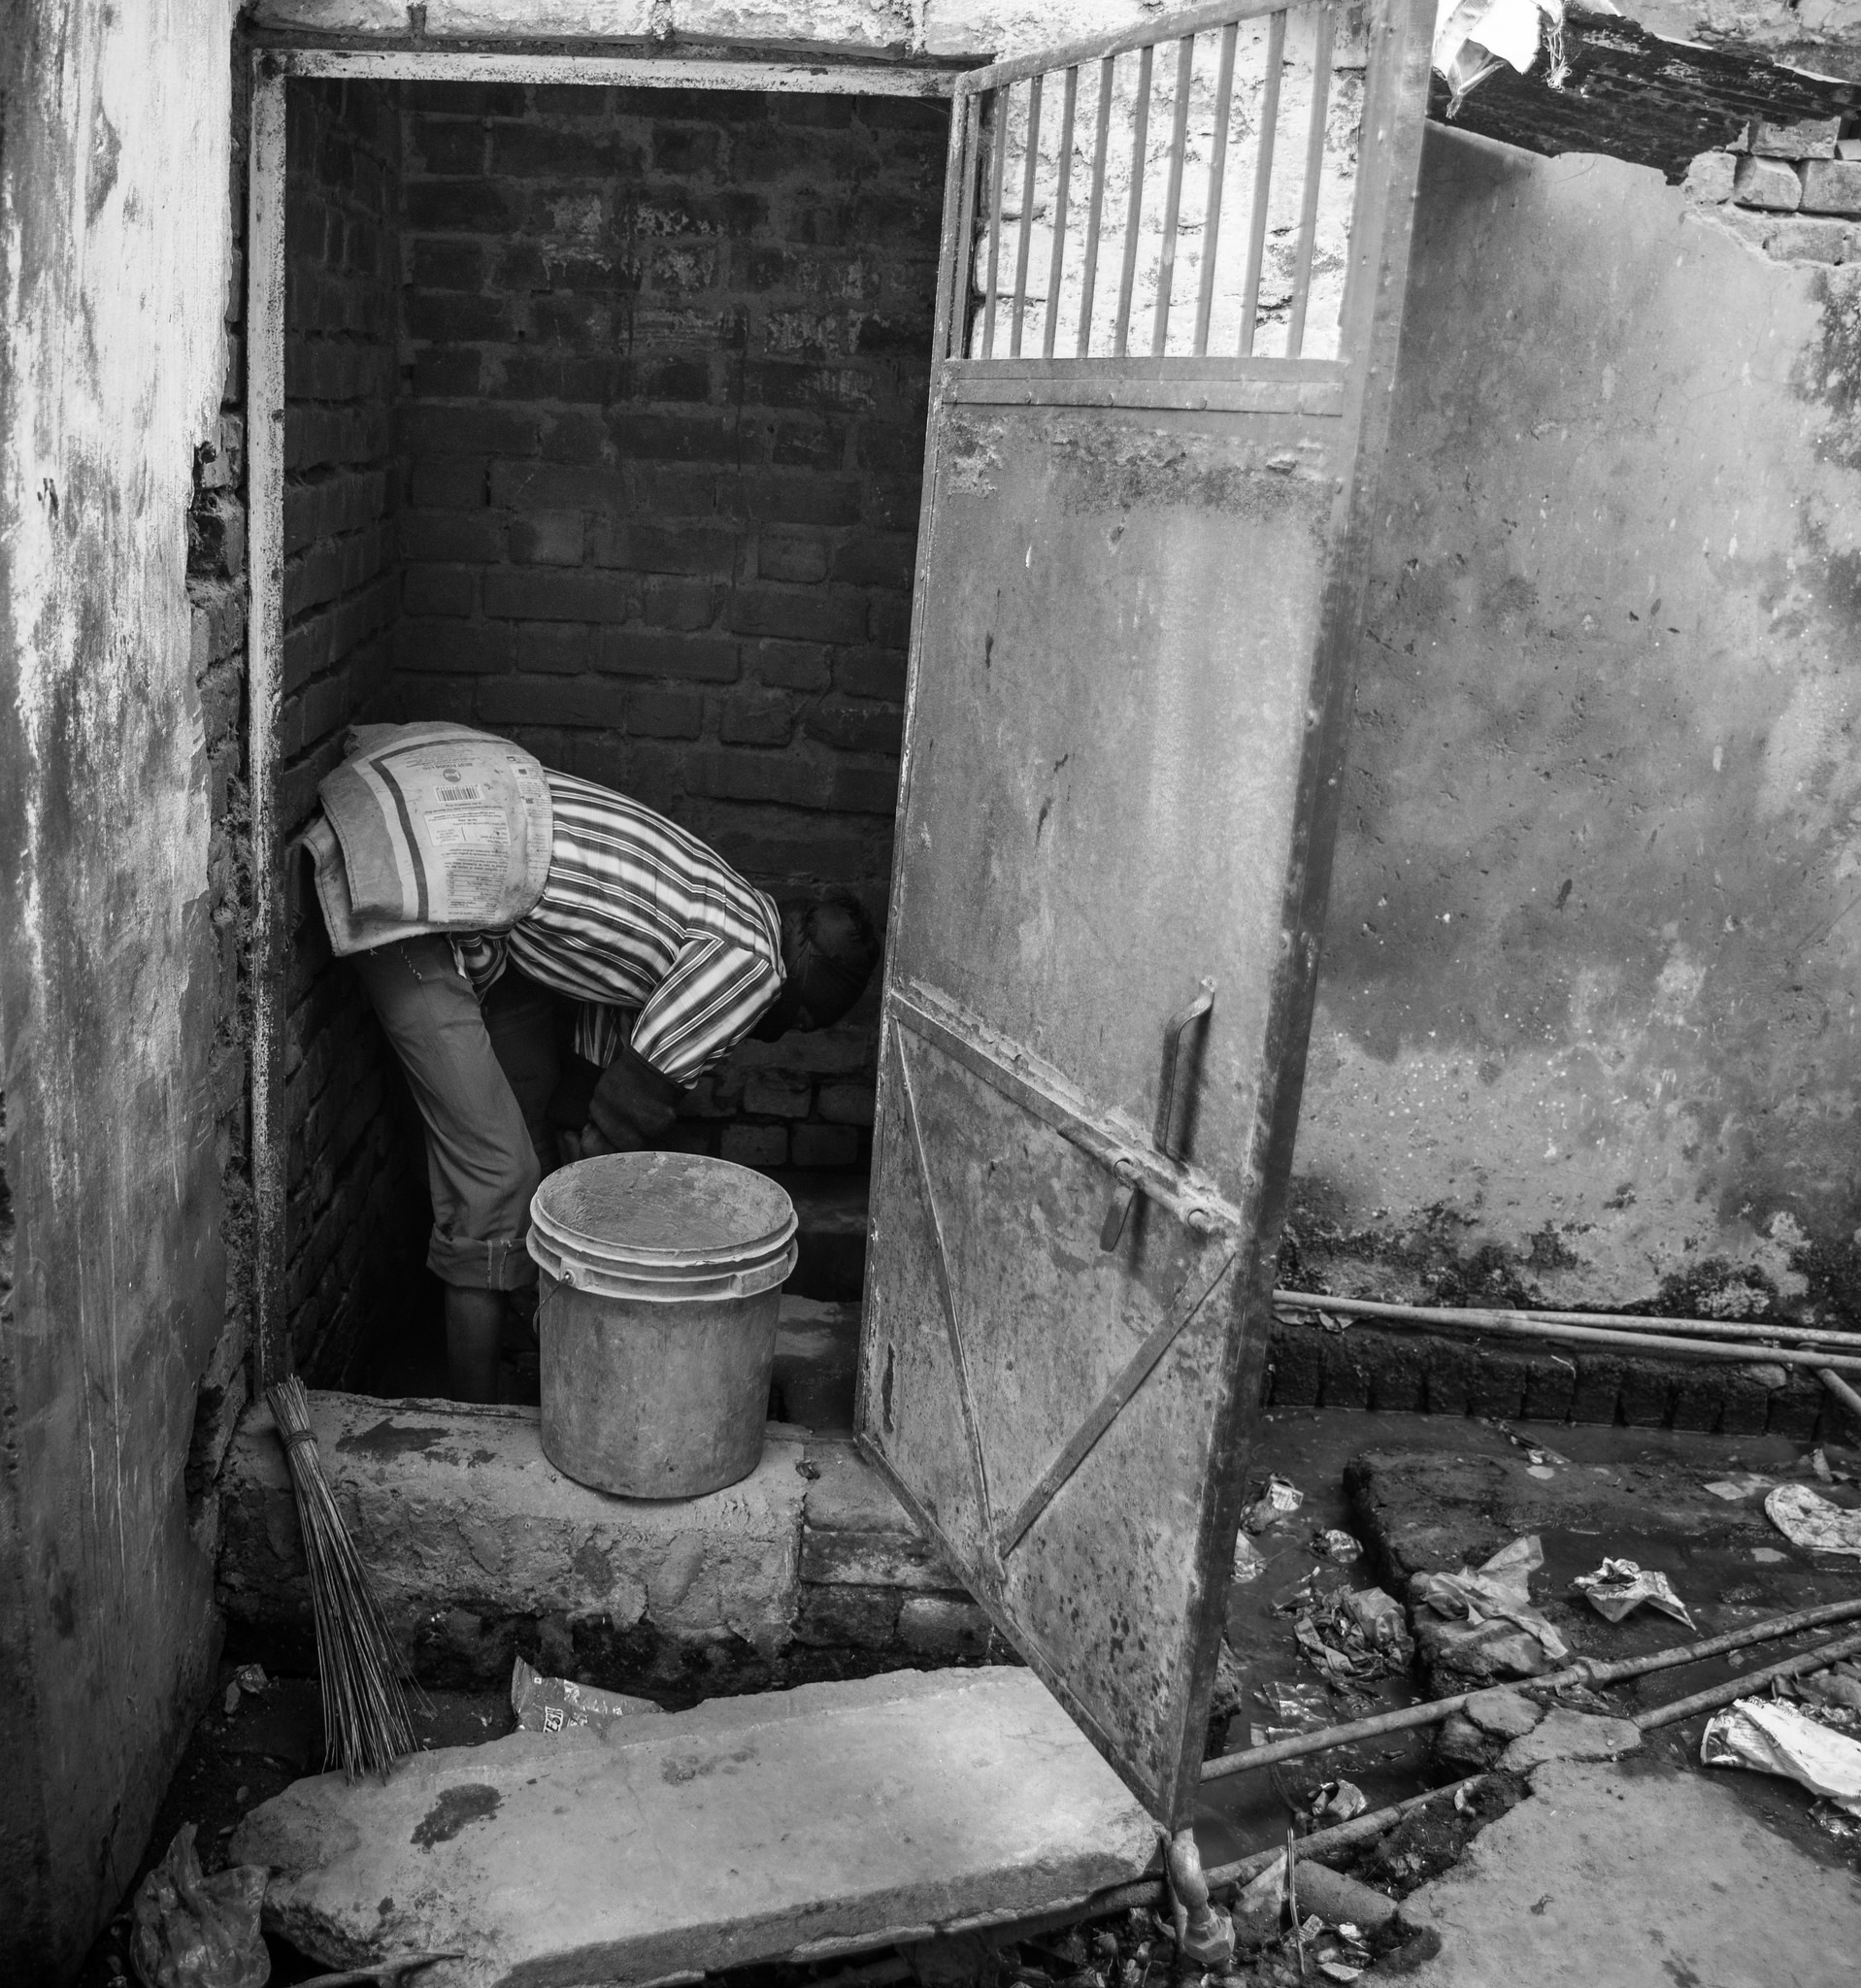 A man cleaning a dry latrine. Credit: Sharada Prasad CS/Flickr CC BY 2.0